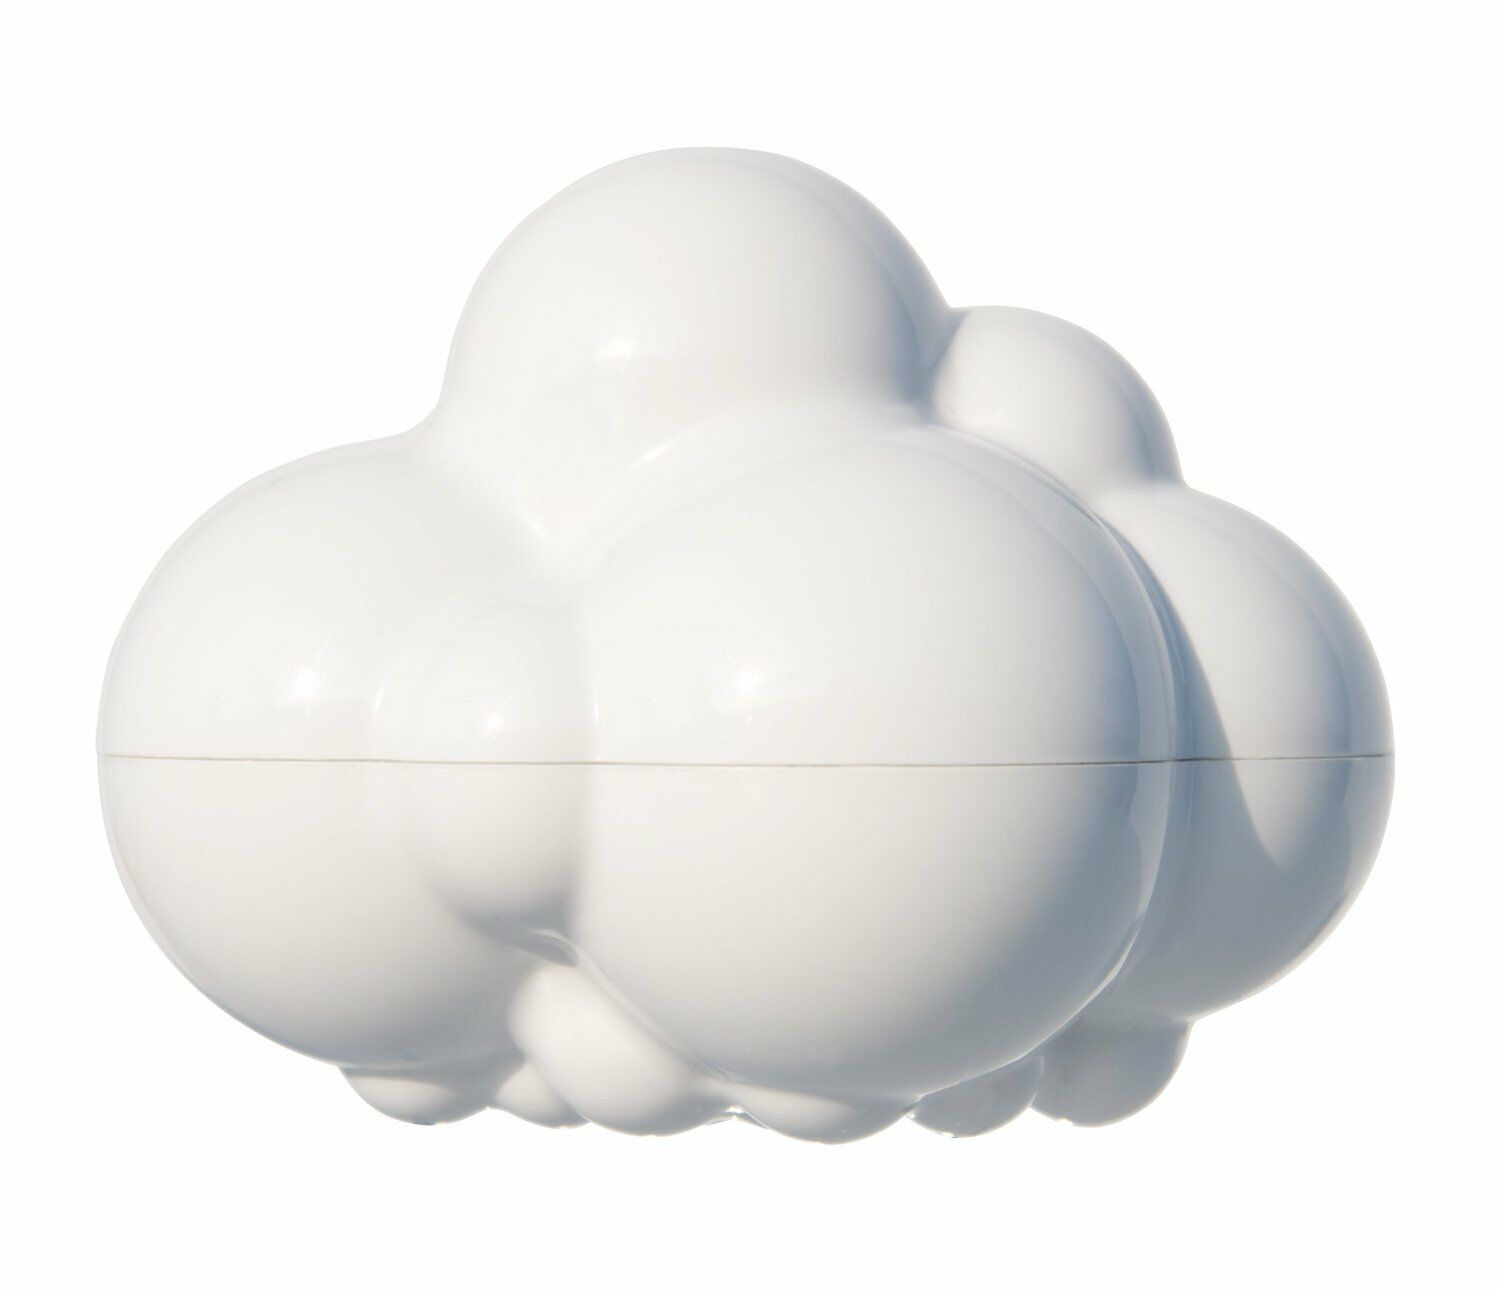 XoomBot® Rain Cloud Bath Toy is Fun and Educational!